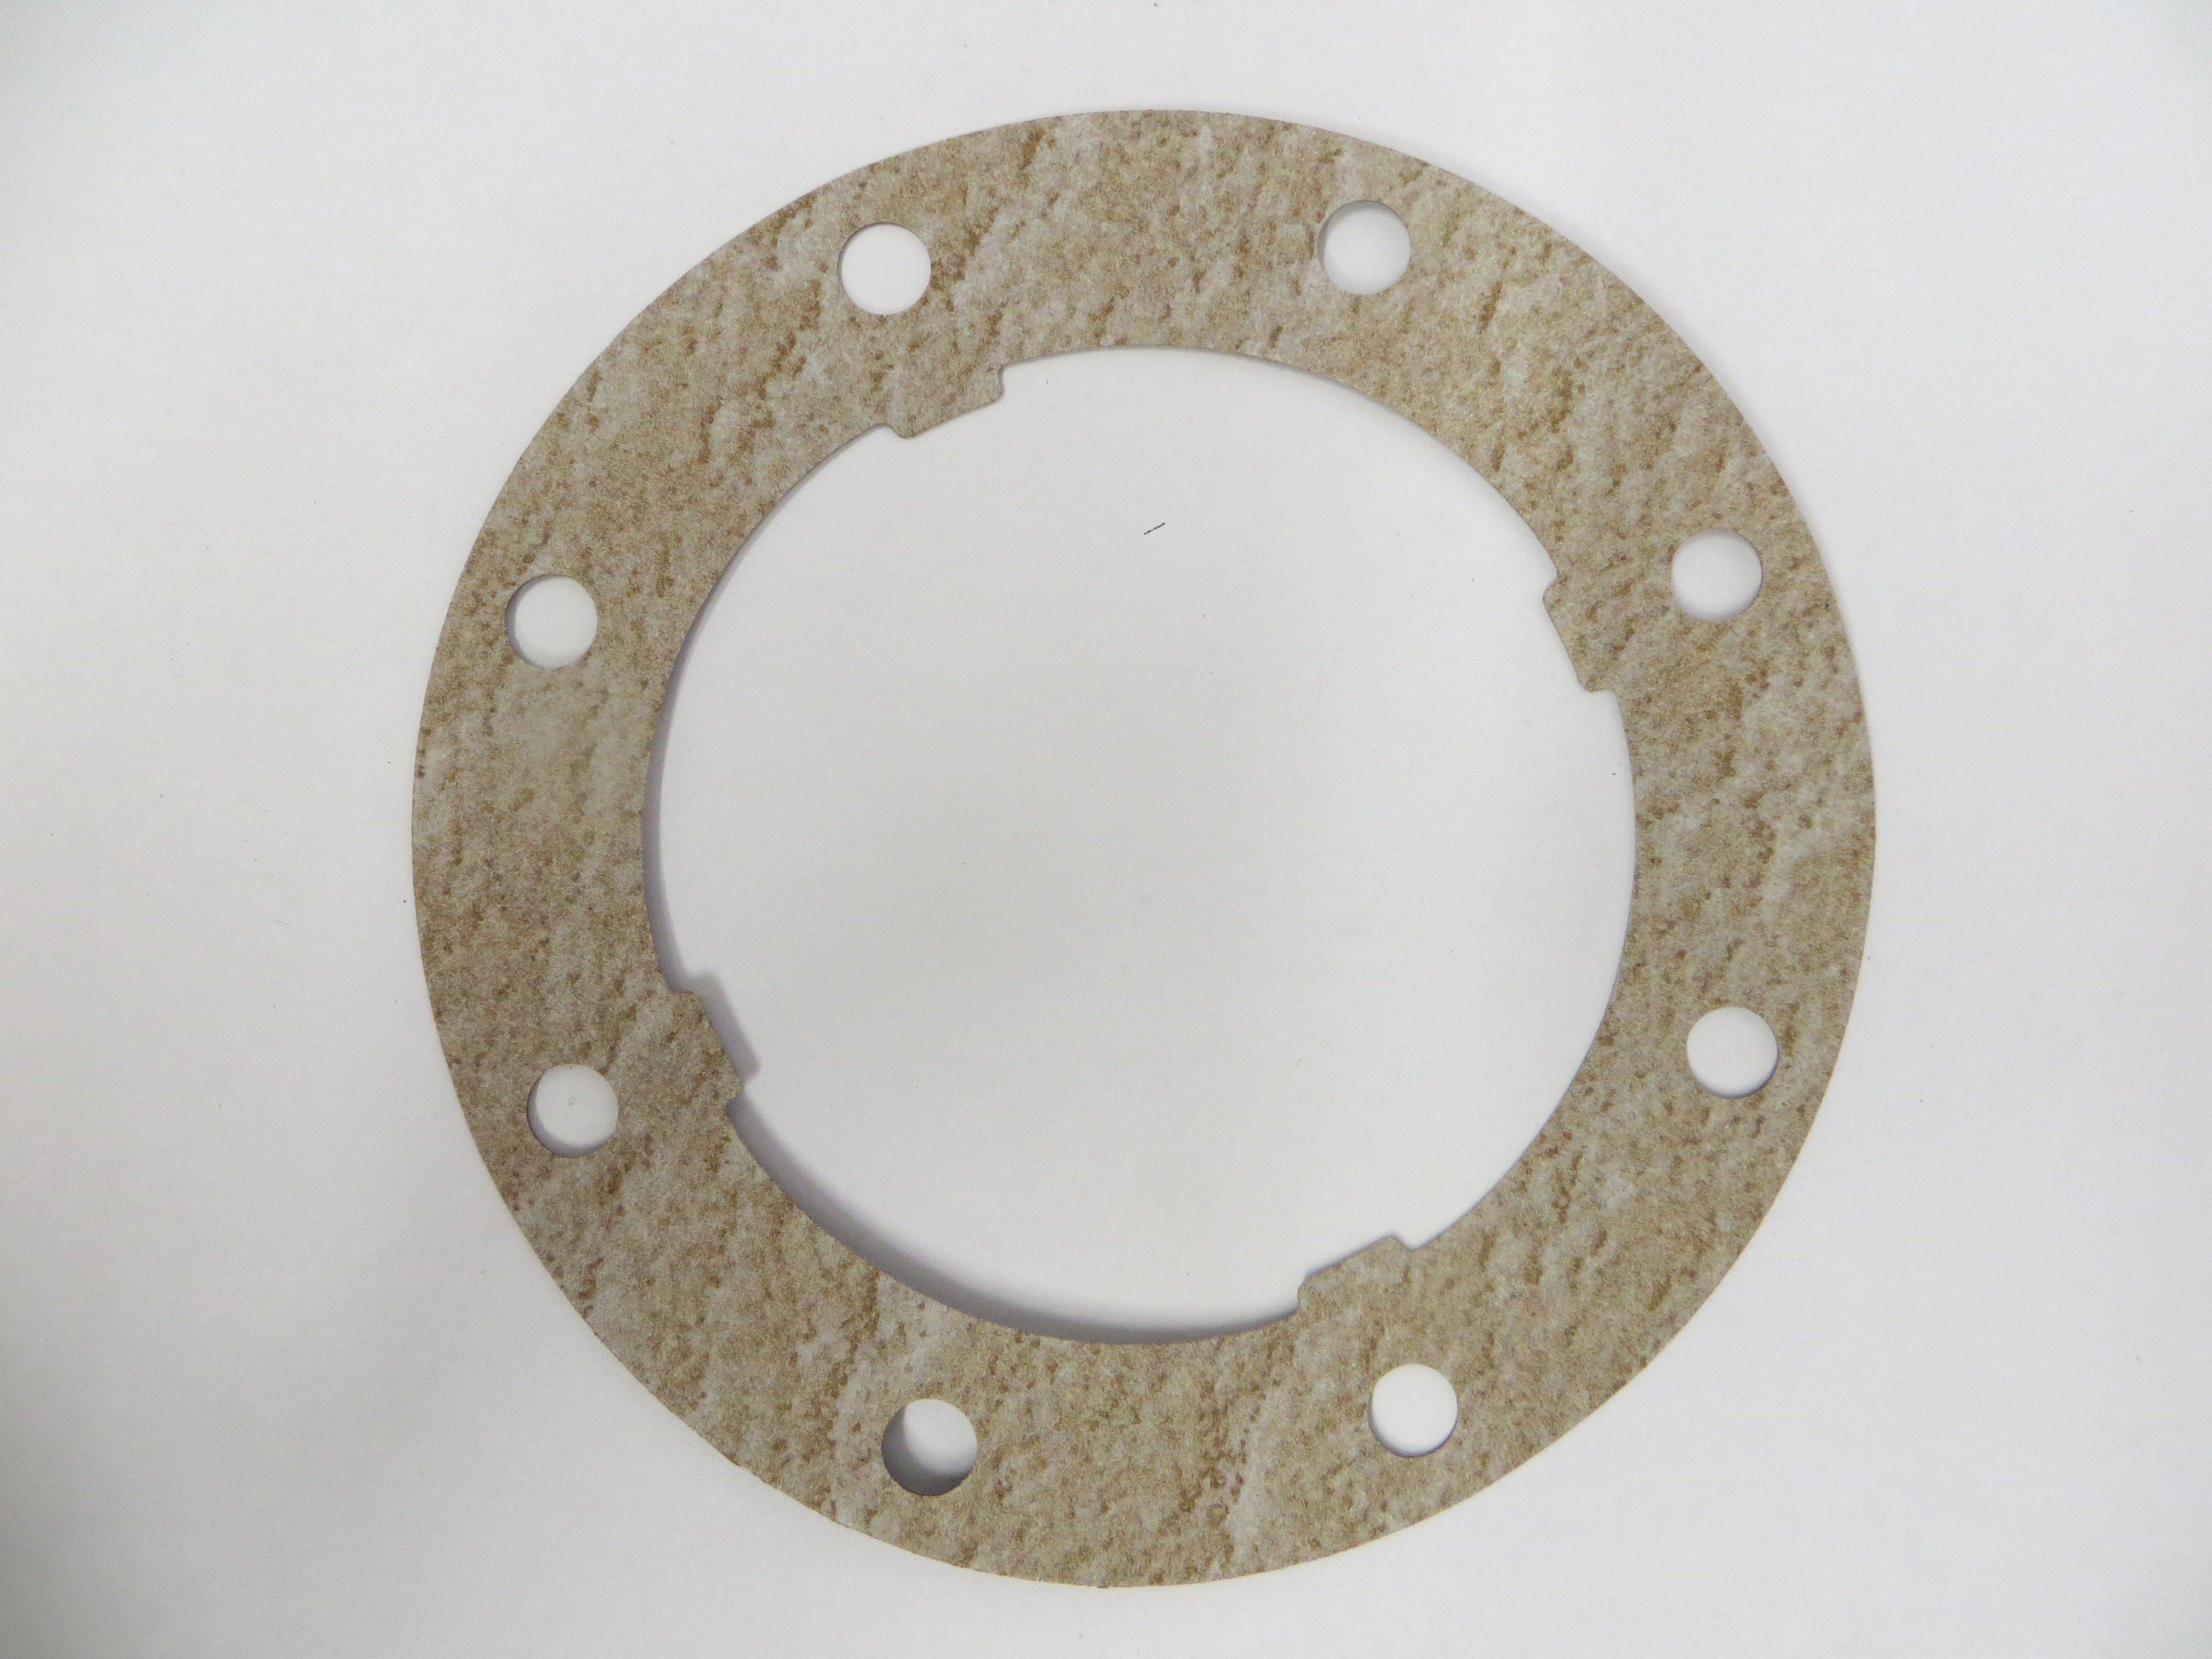 39122 - Wash Tub Gasket